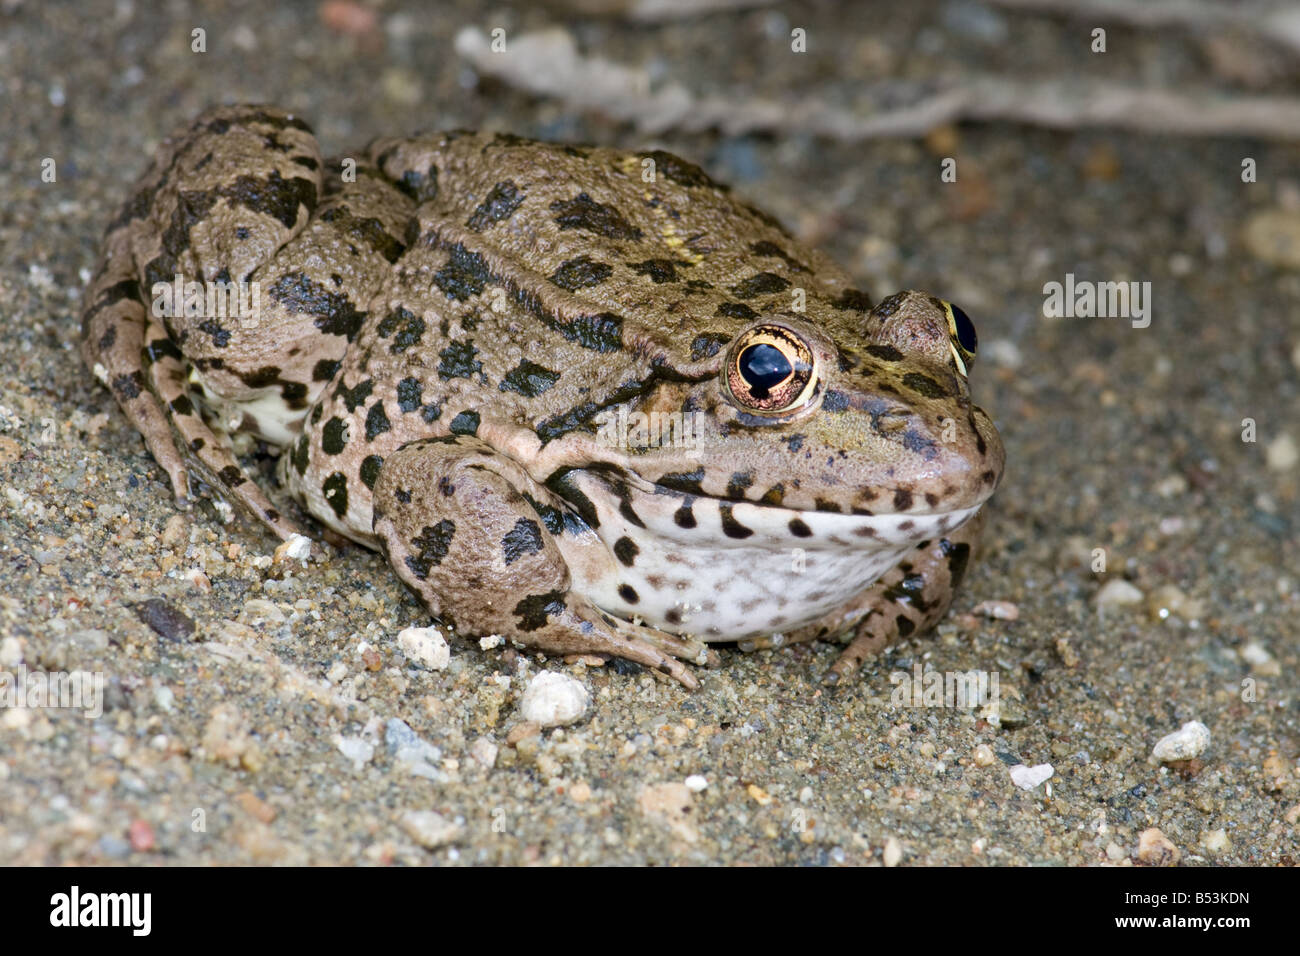 Marsh Frog/Lake Frog/Laughing Frog, Rana ridibunda/Pelophylax ridibundus - Stock Image